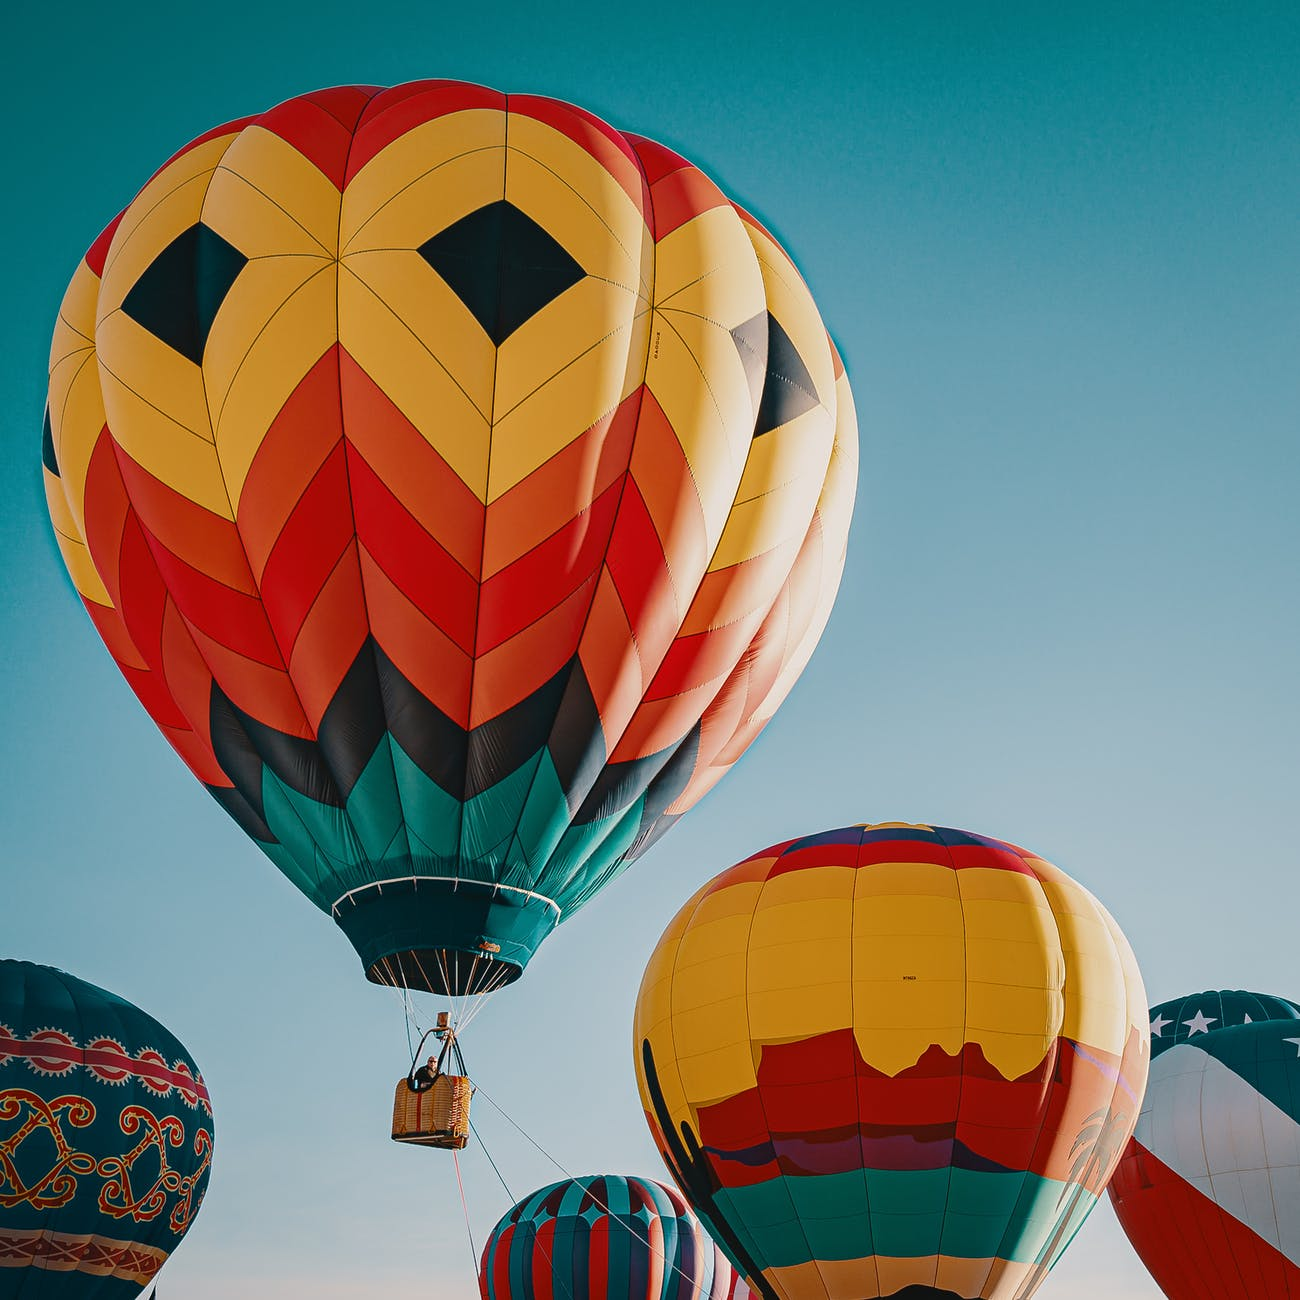 photo of multi coloured hot air balloons